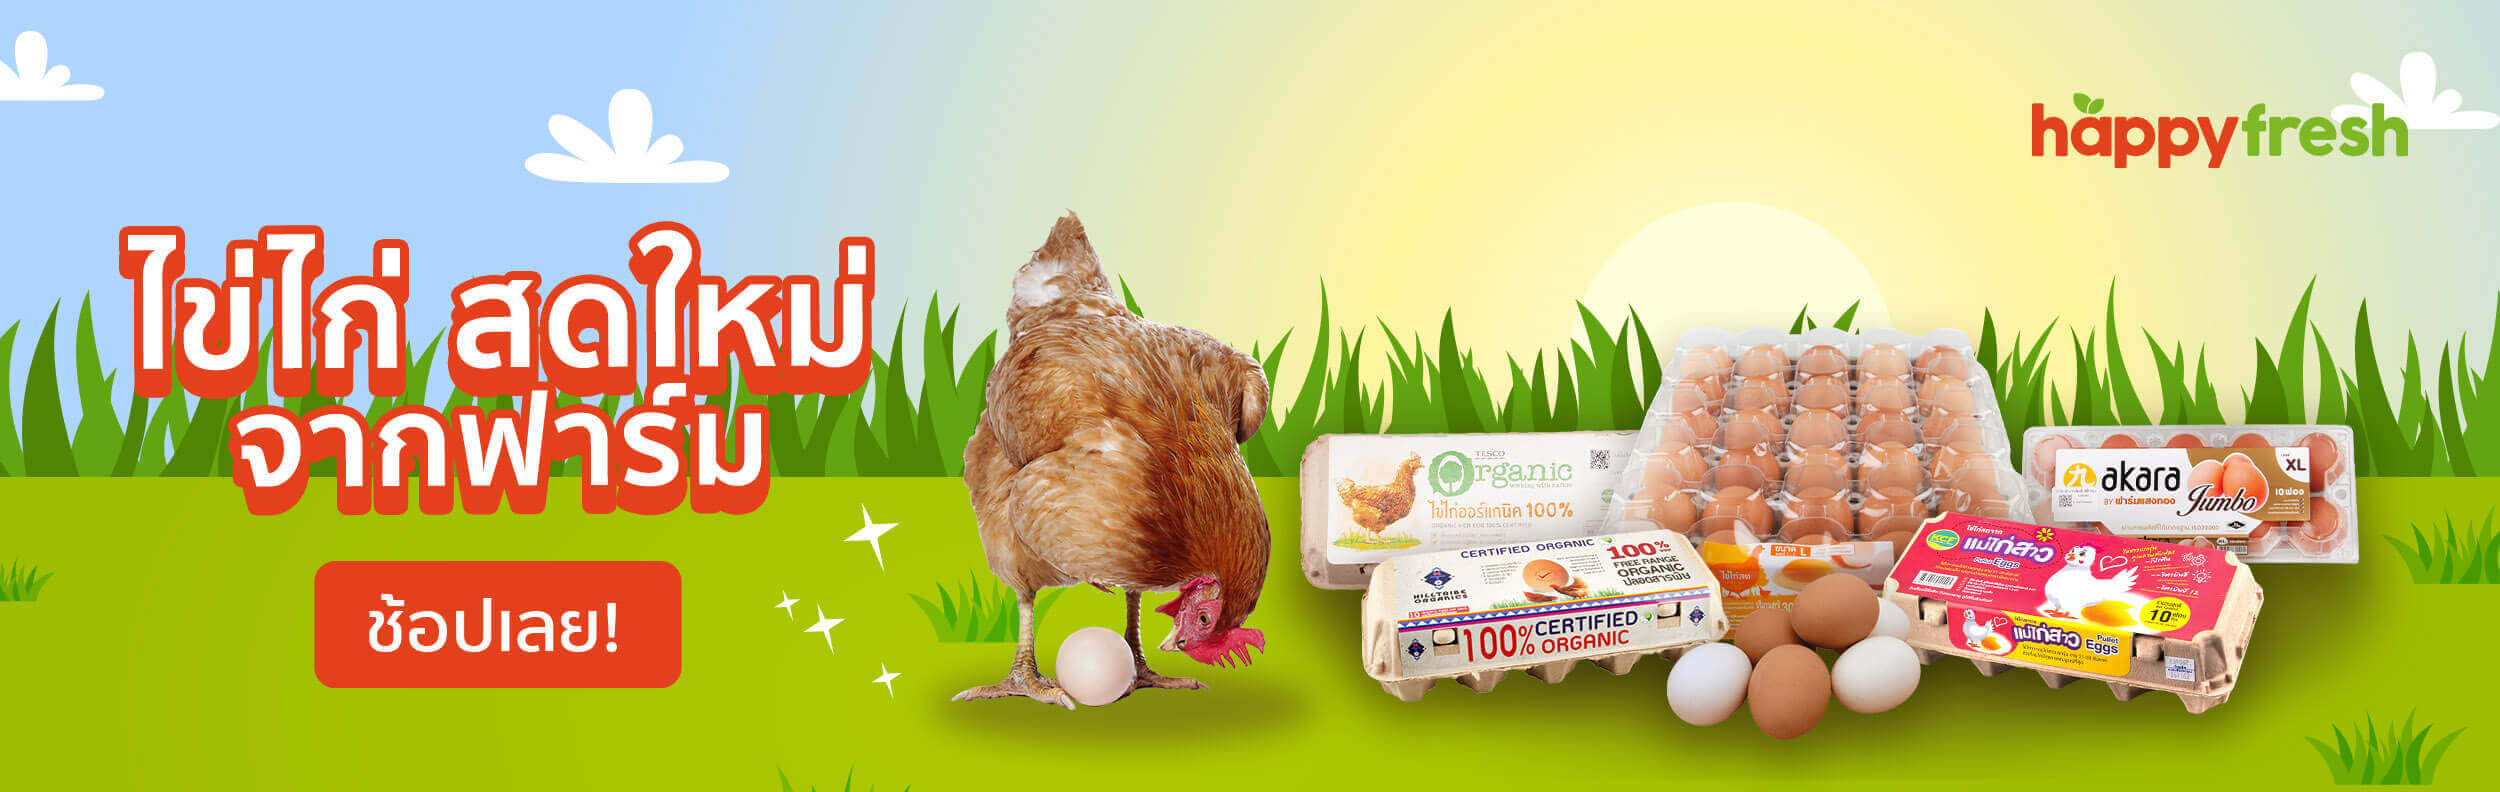 HappyFresh_Promote_Products_Banner_Eggs